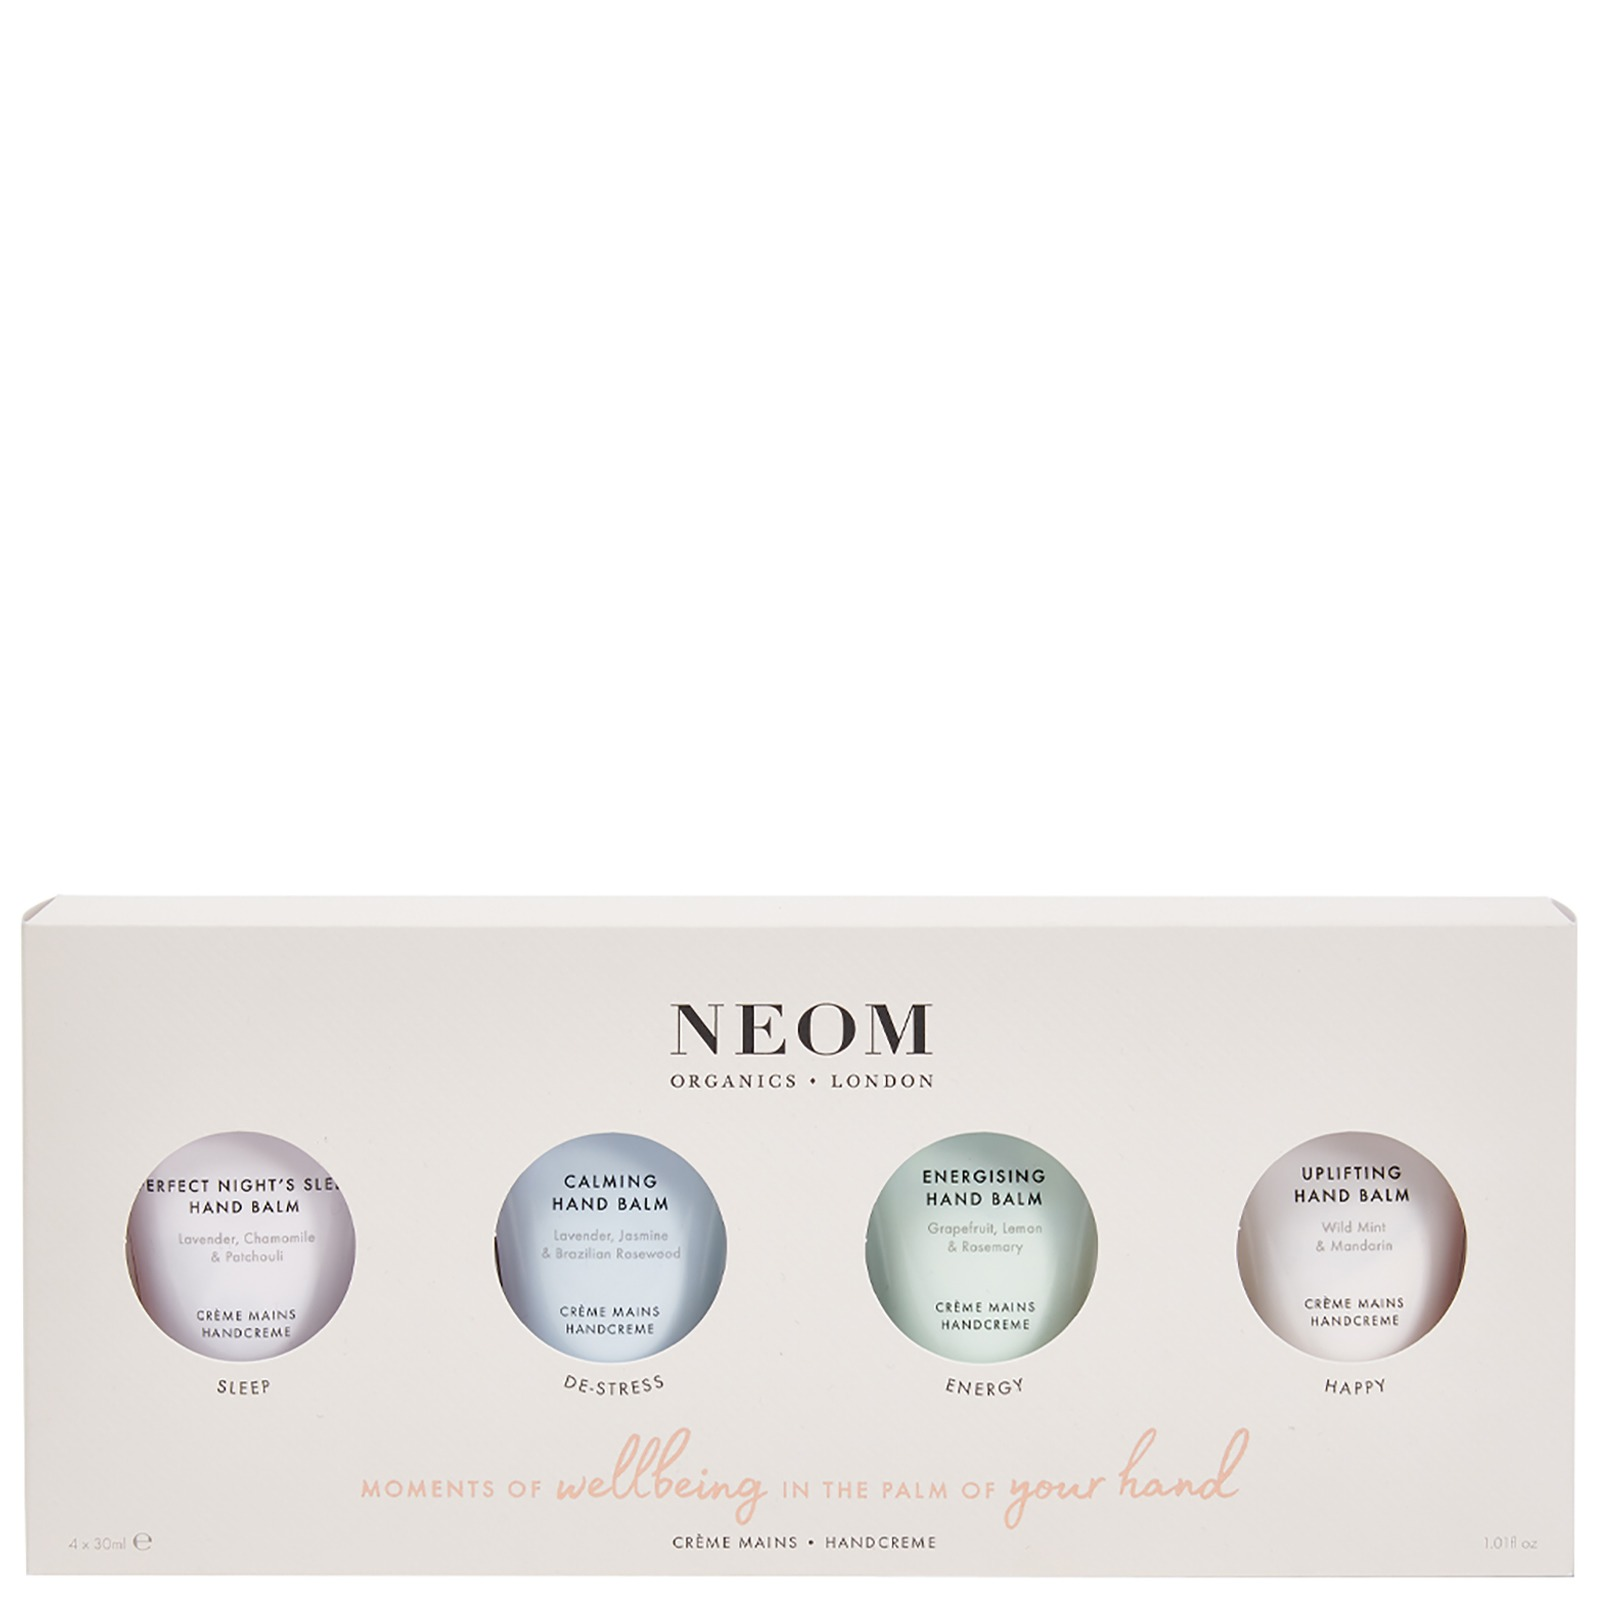 Neom Organics London Gifting & Accessories Moments of Wellbeing in the Palm of Your Hand